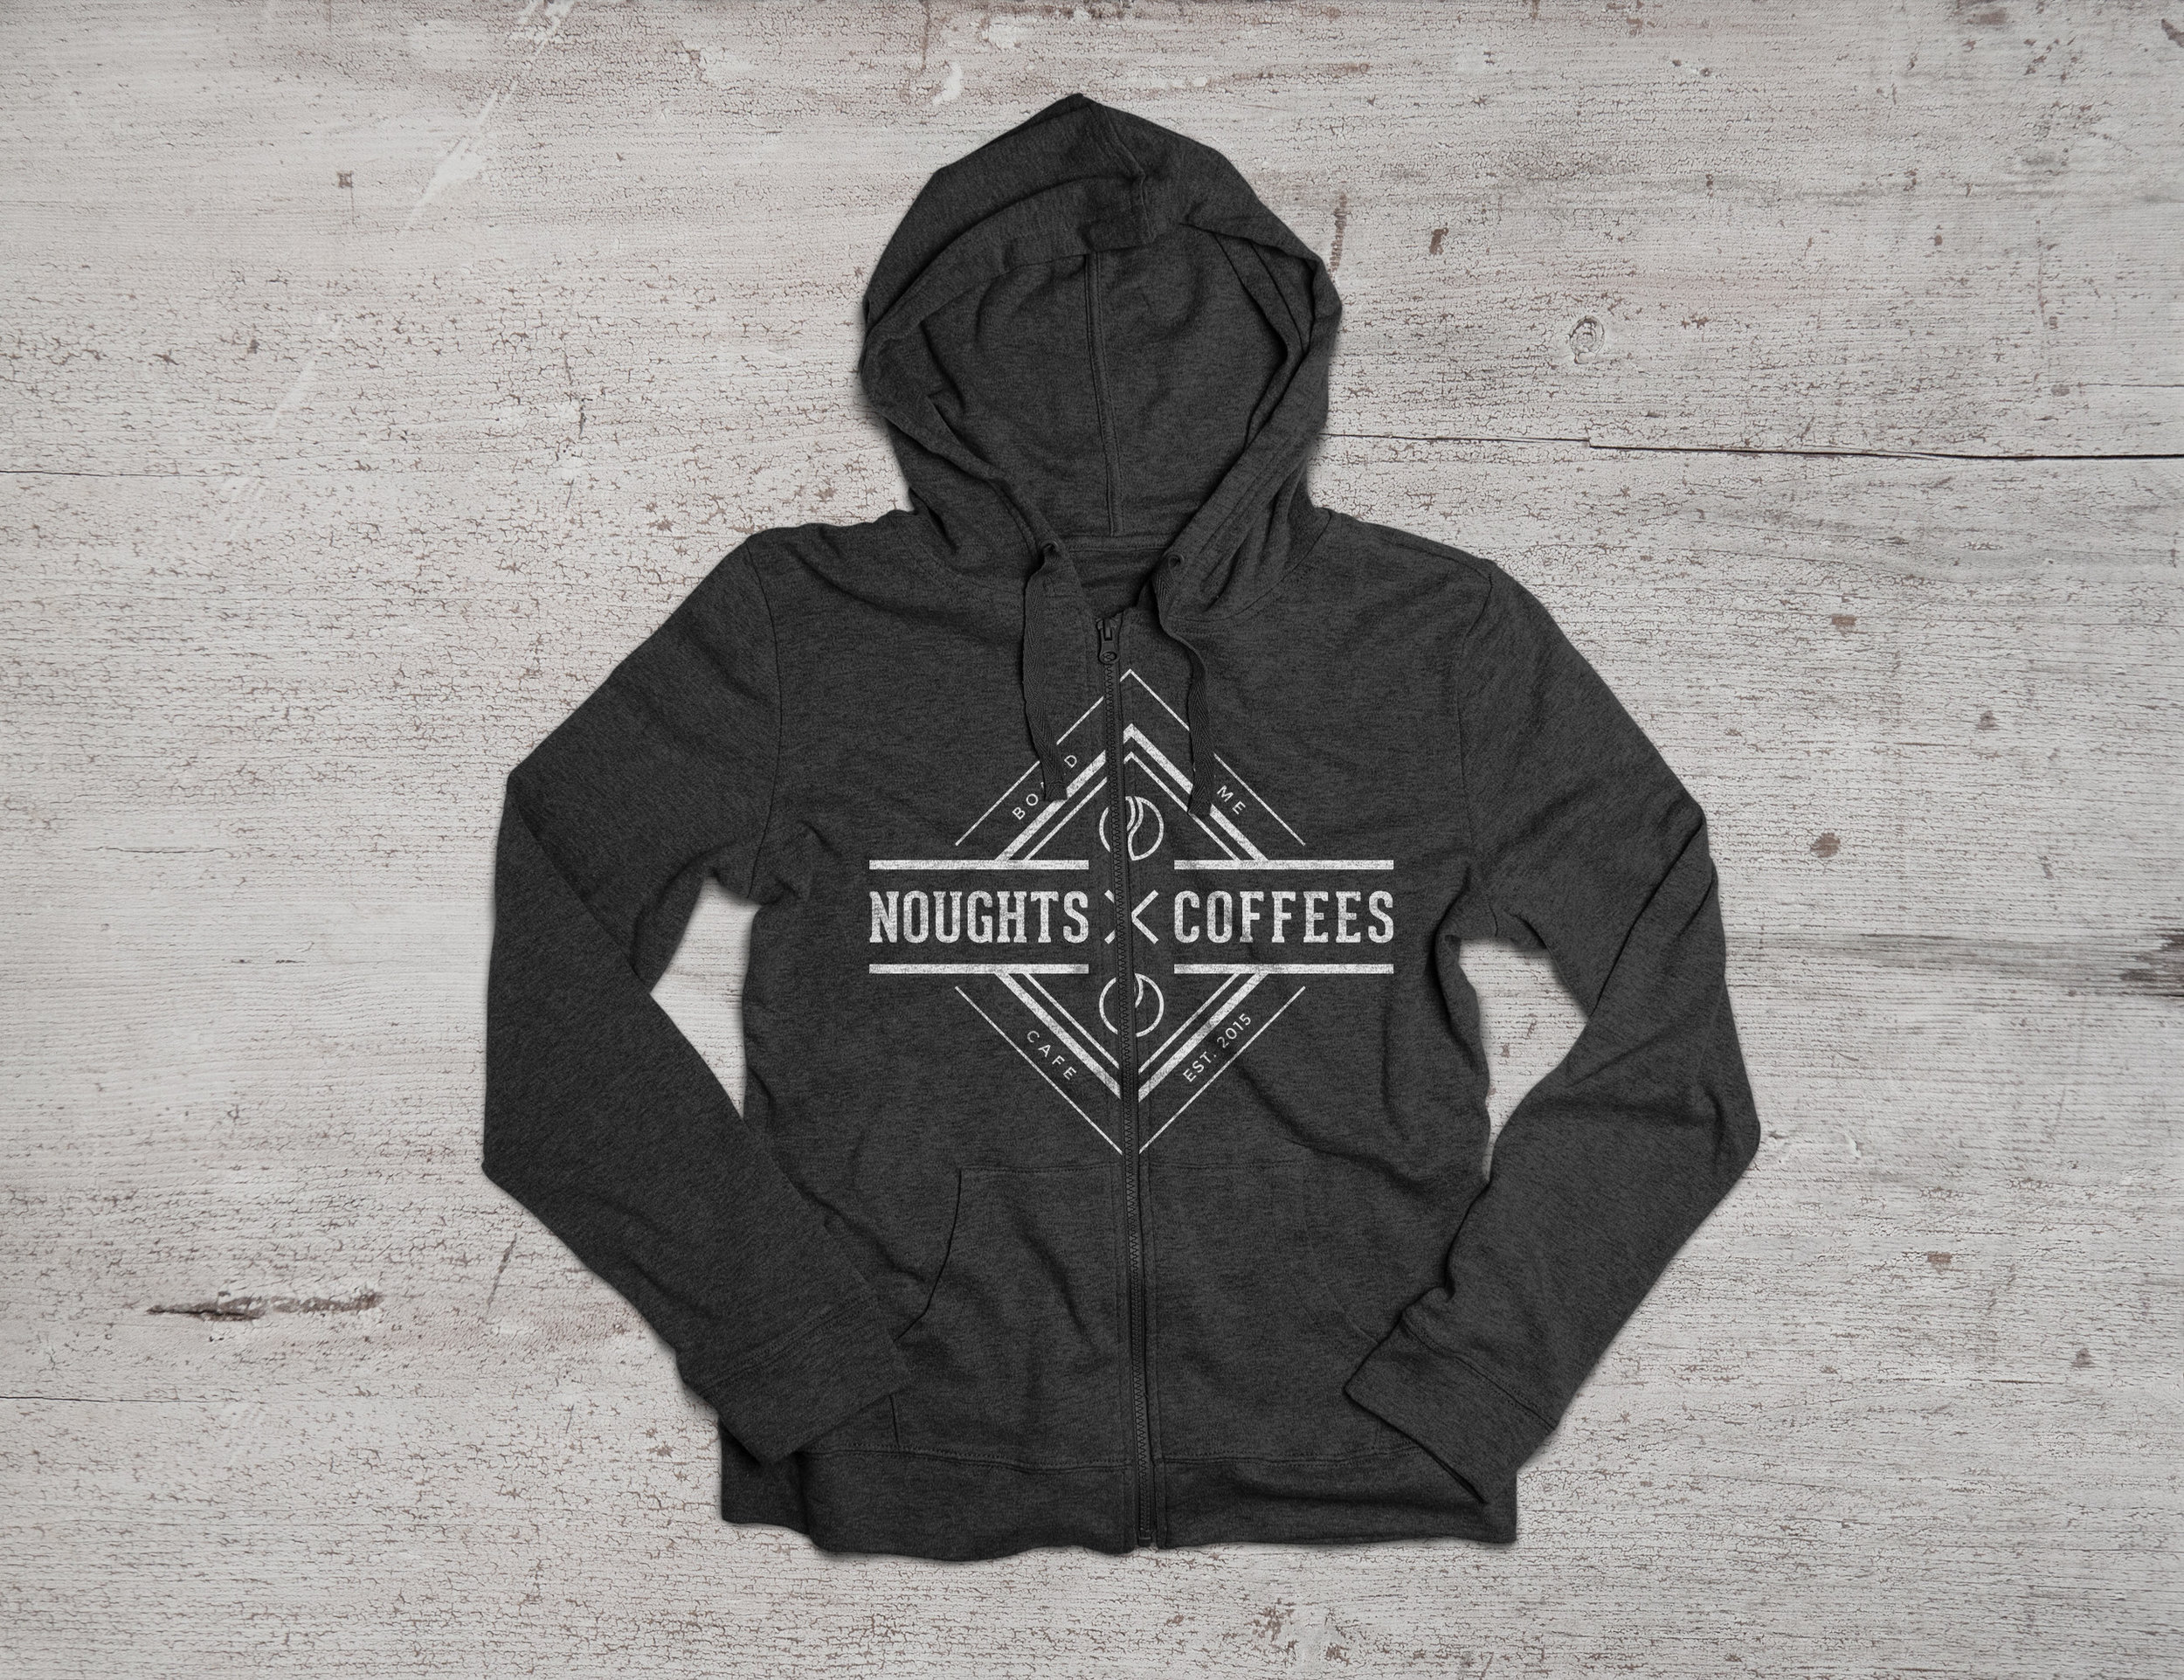 noughts and coffees hoodie